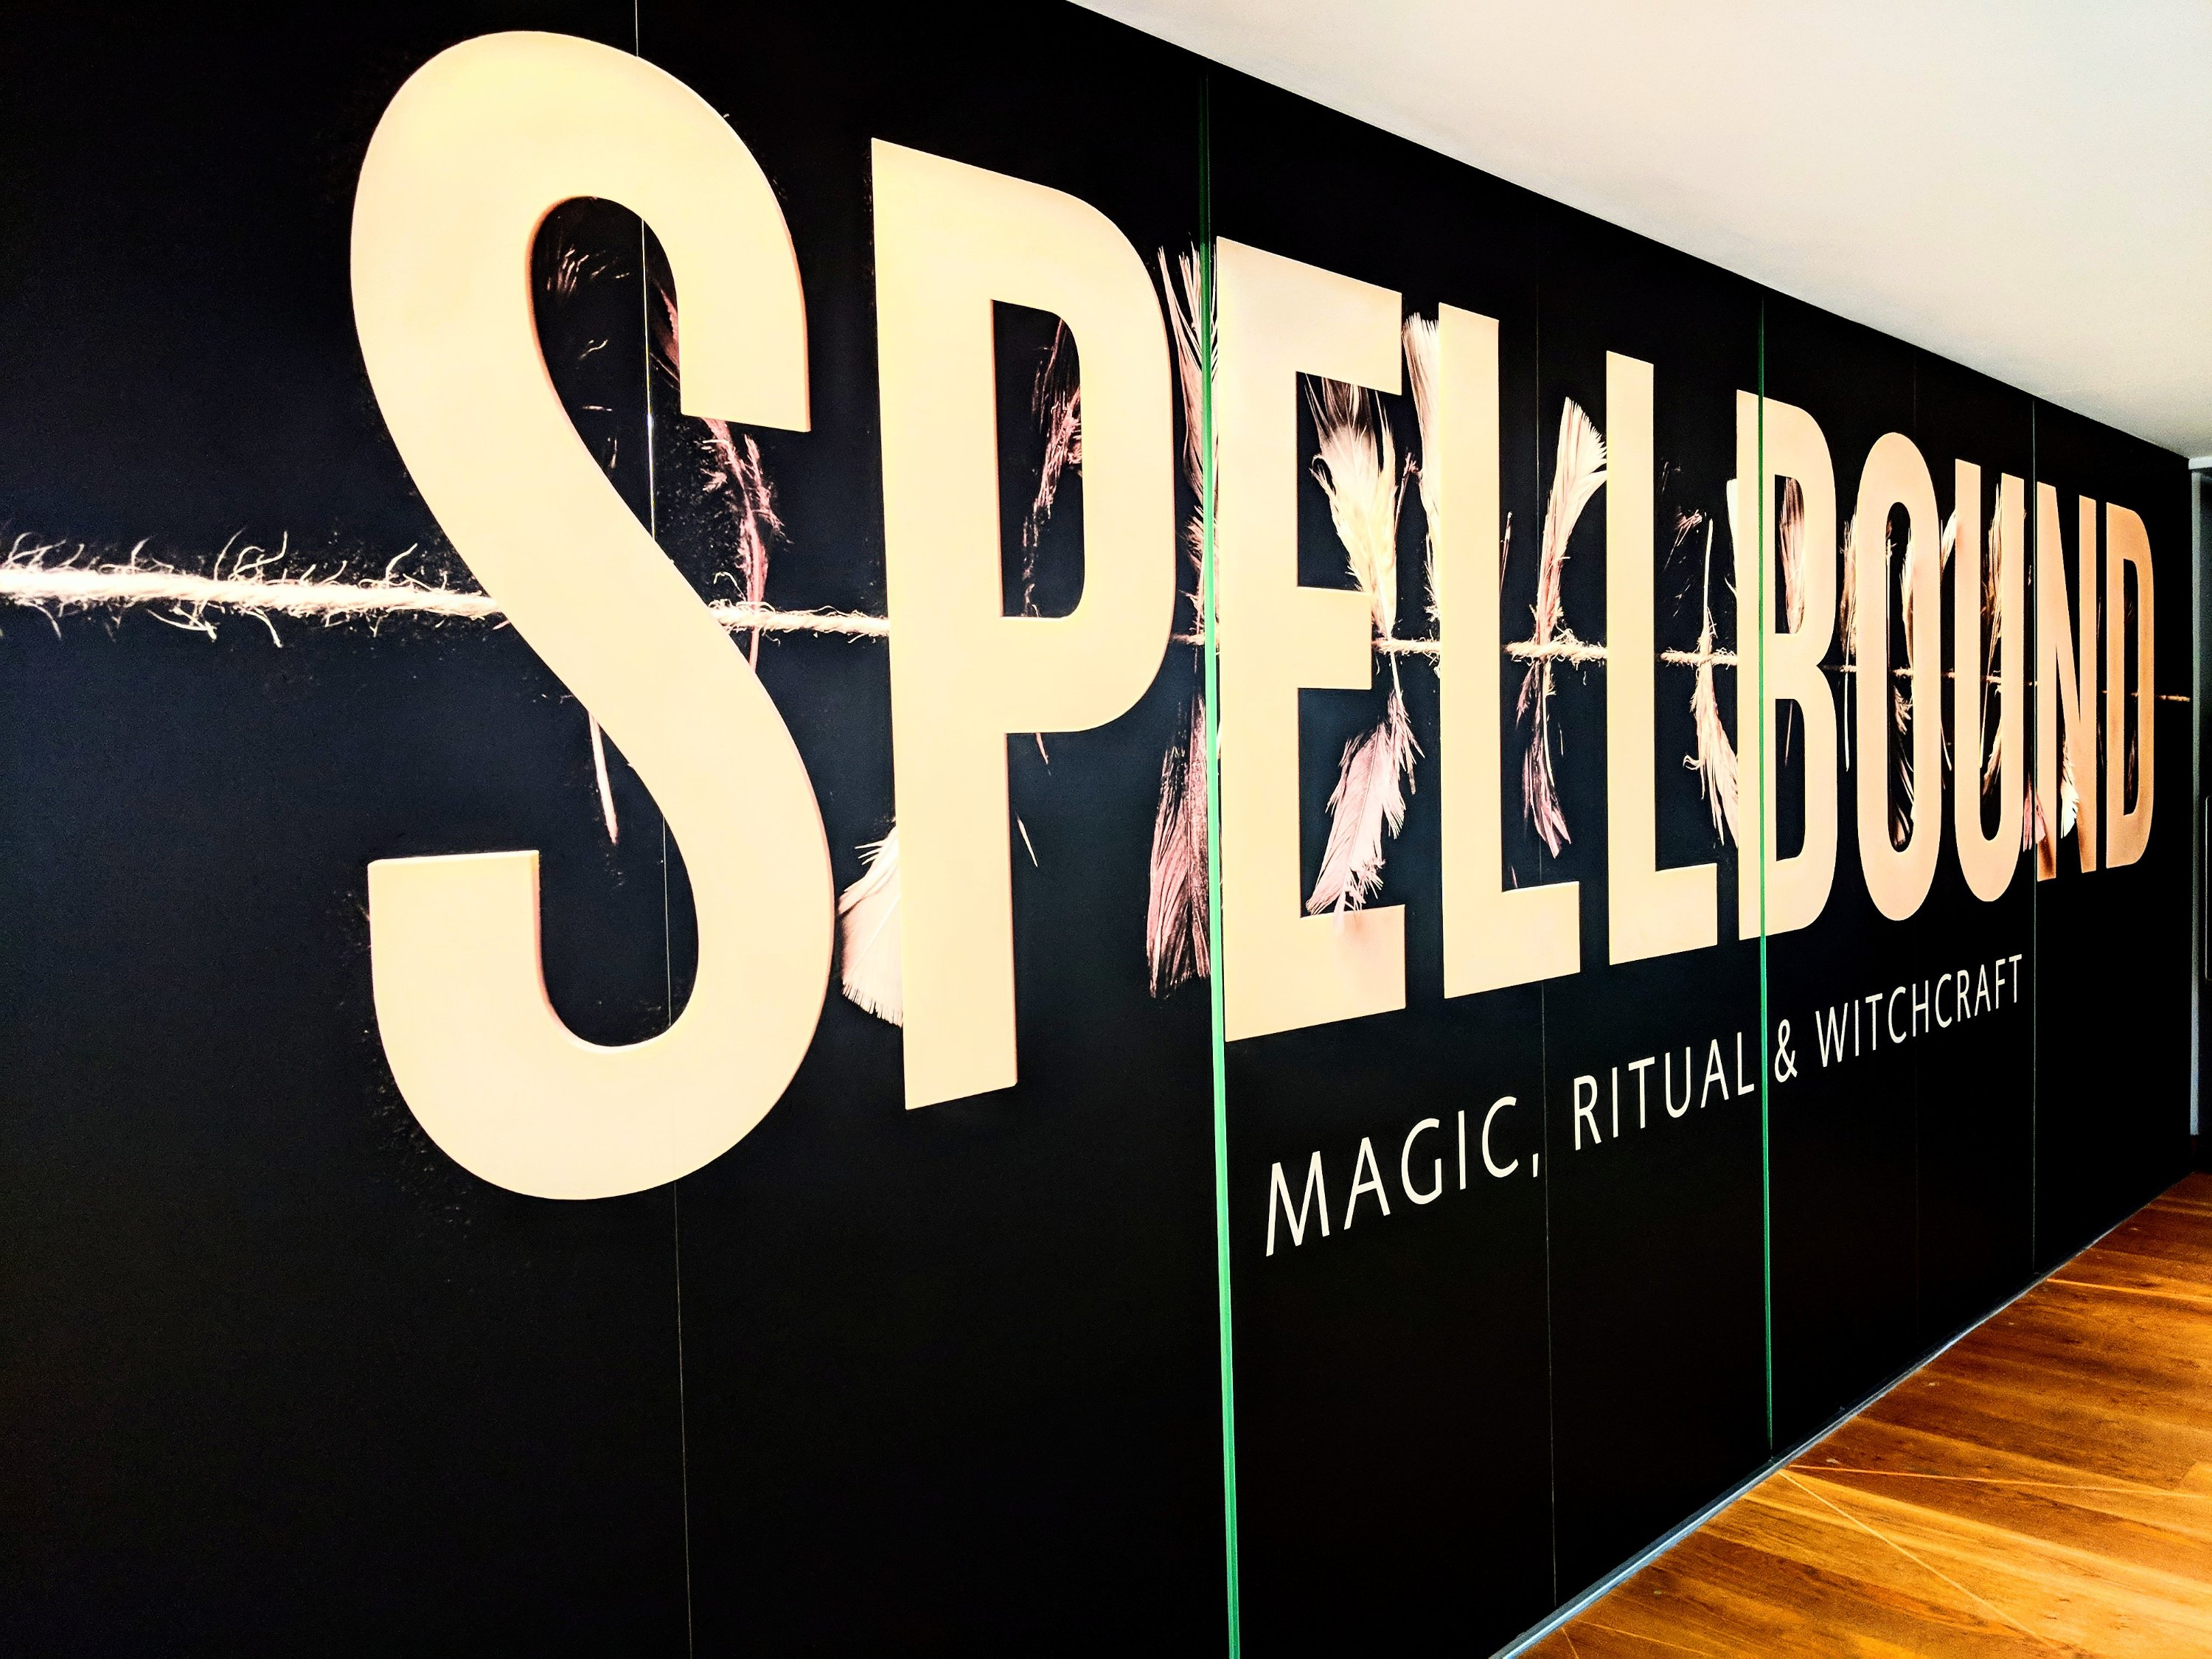 Spellbound exhibition of magic, ritual and witchcraft at the Ashmolean in Oxford, UK.